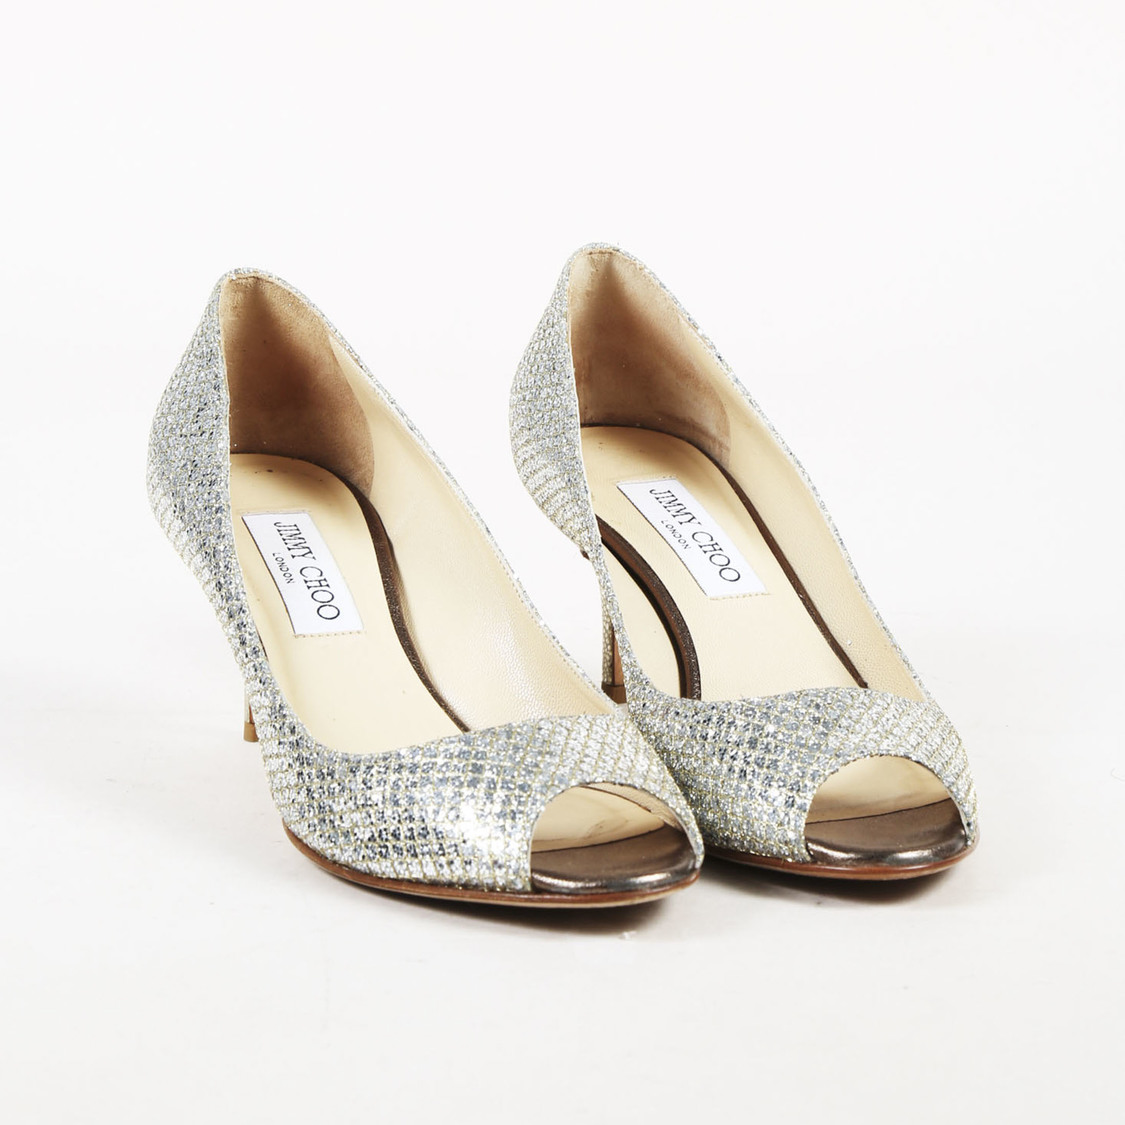 239a0bd3f6d Details about Jimmy Choo Champagne Glittered Leather